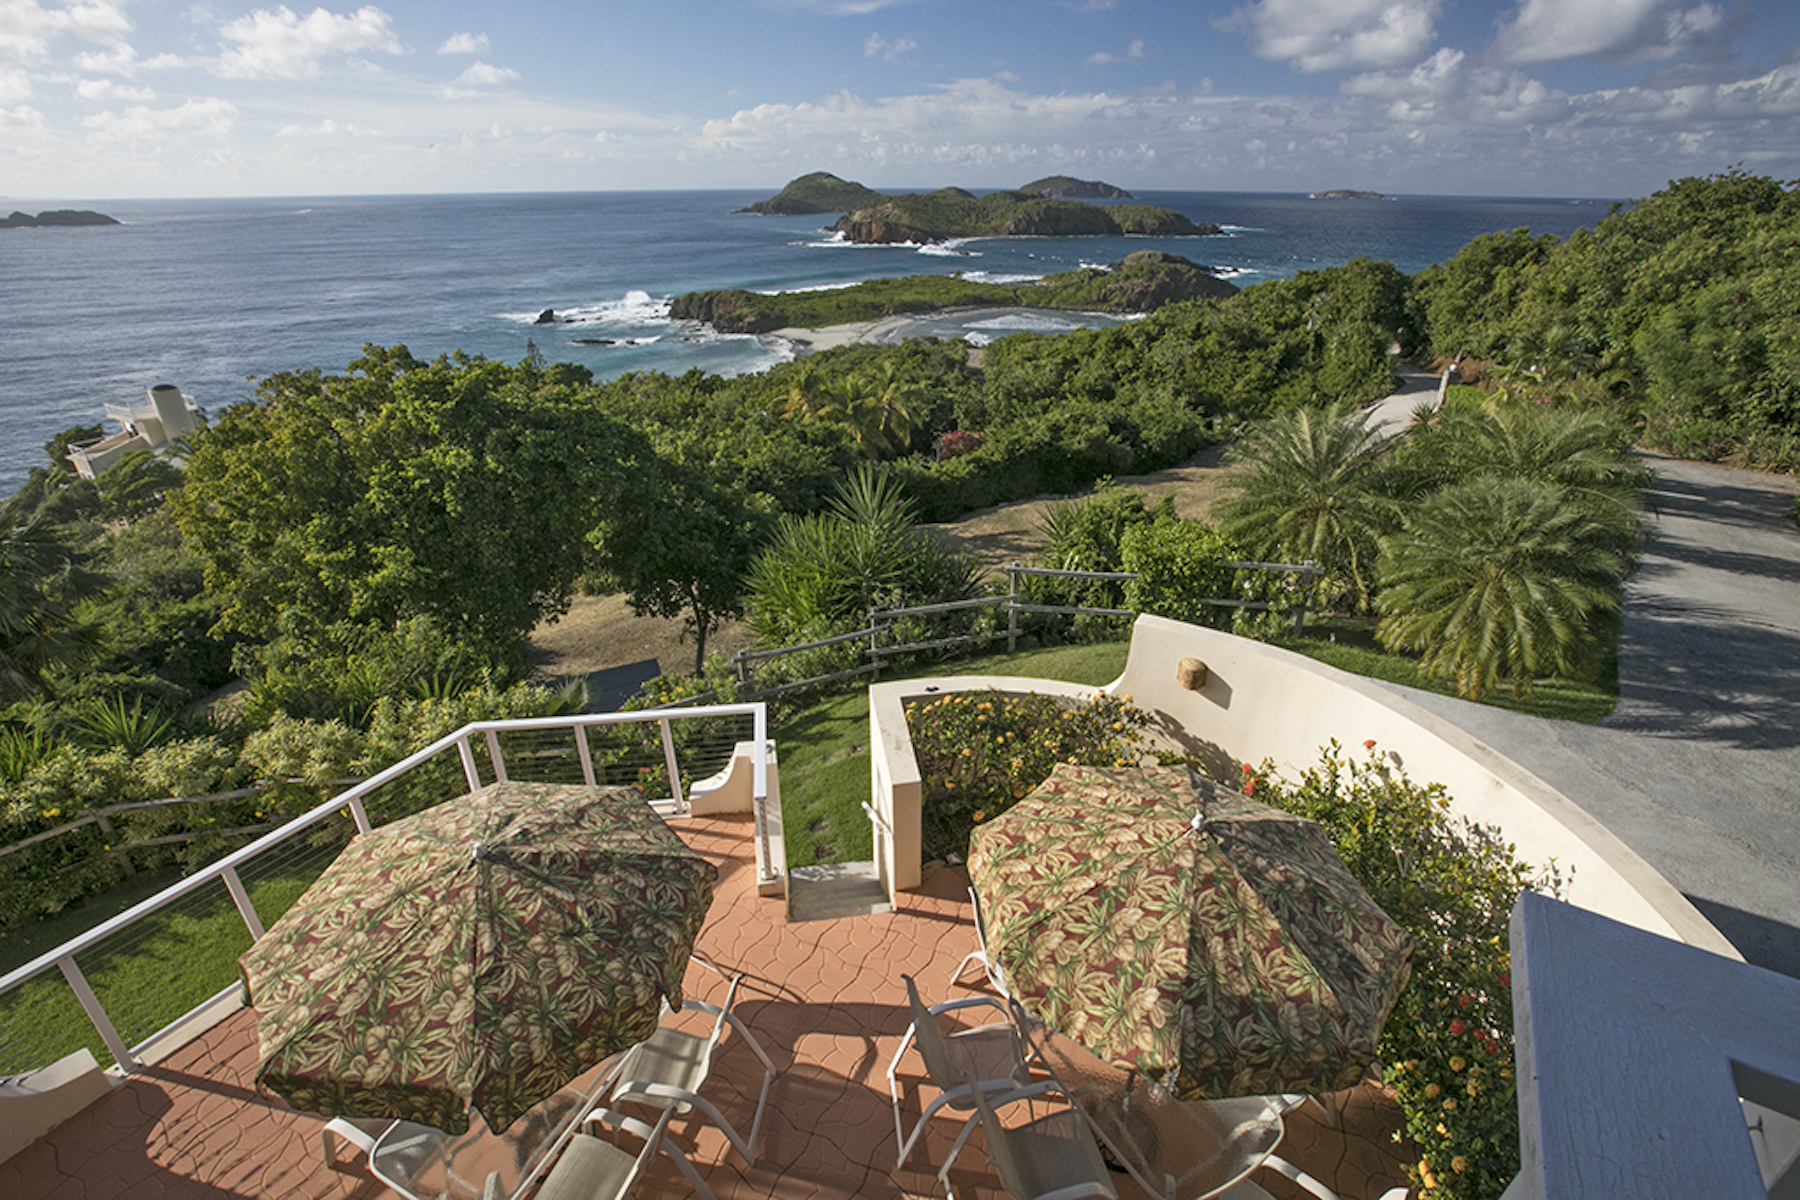 Additional photo for property listing at Siren's Song 1-2-A Botany Bay St Thomas, Virgin Islands 00802 United States Virgin Islands